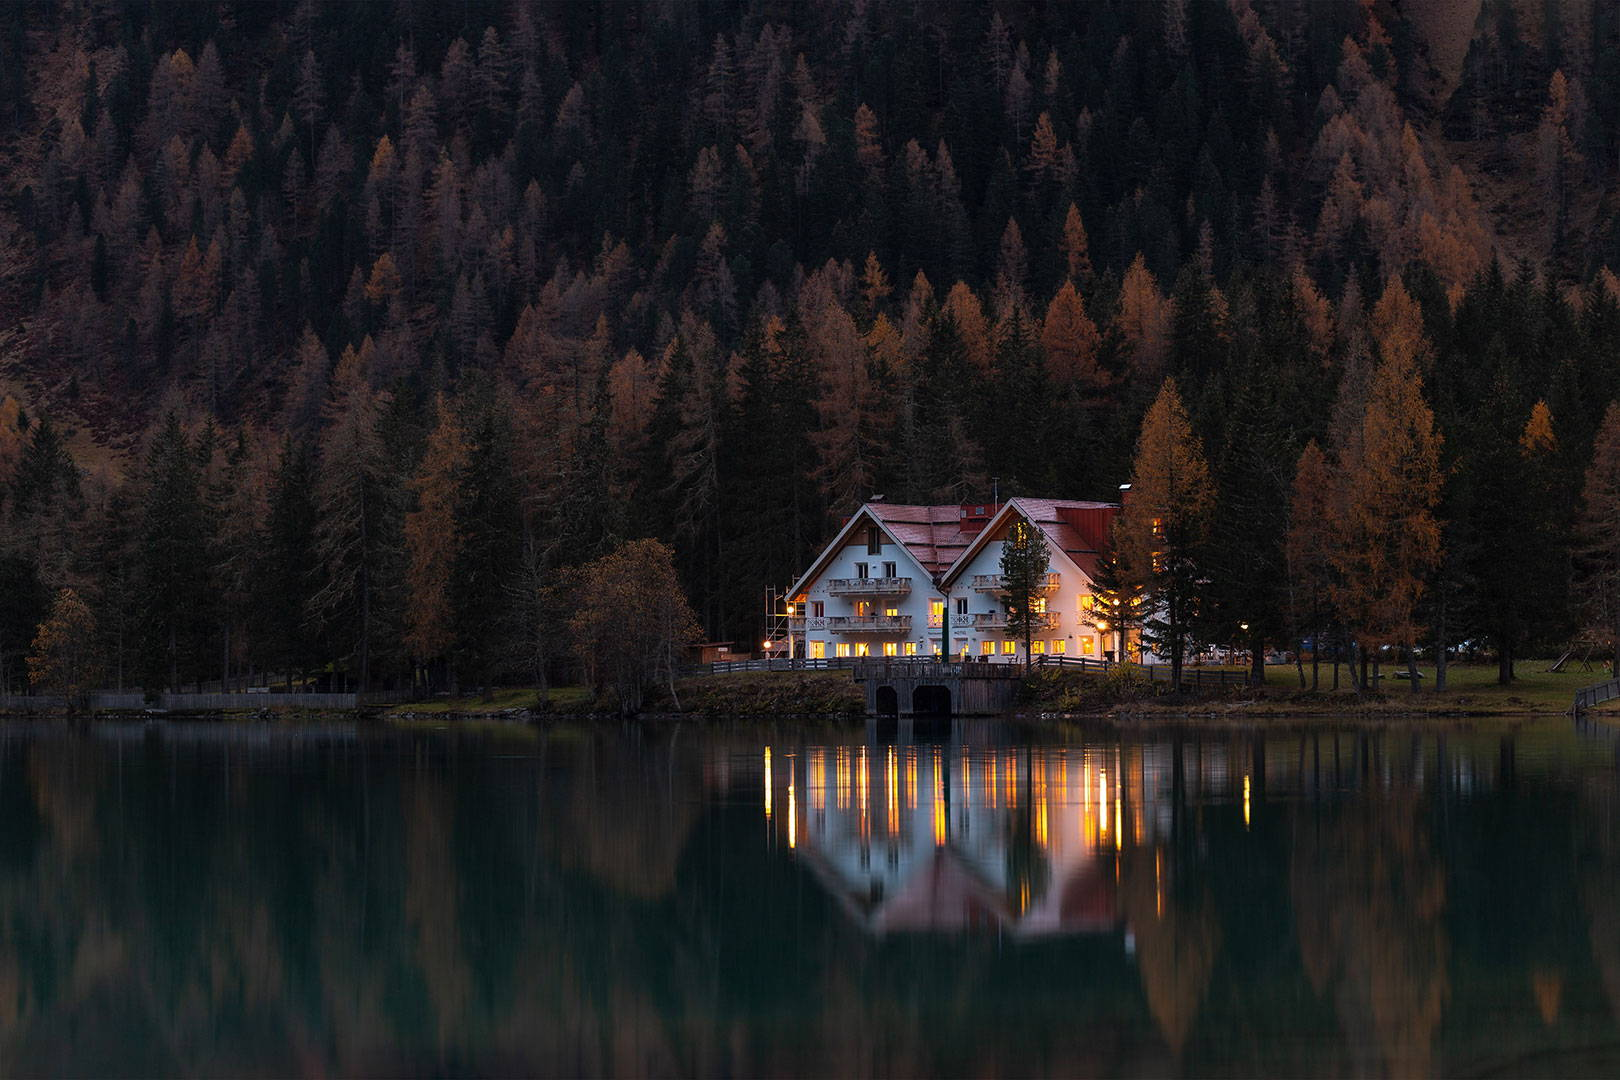 White and Red House  Surrounded by Trees and Lake at Twilight